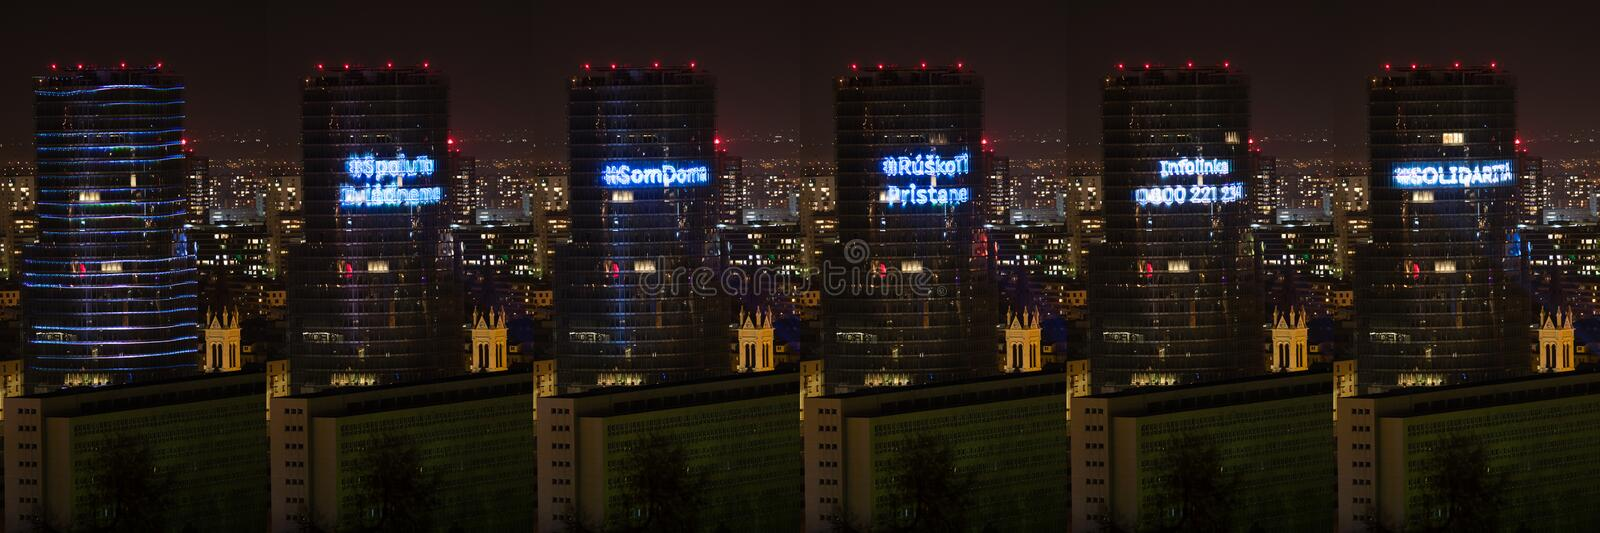 Collage of light hashtags projected to facade of Slovakia central bank's building royalty free stock photo